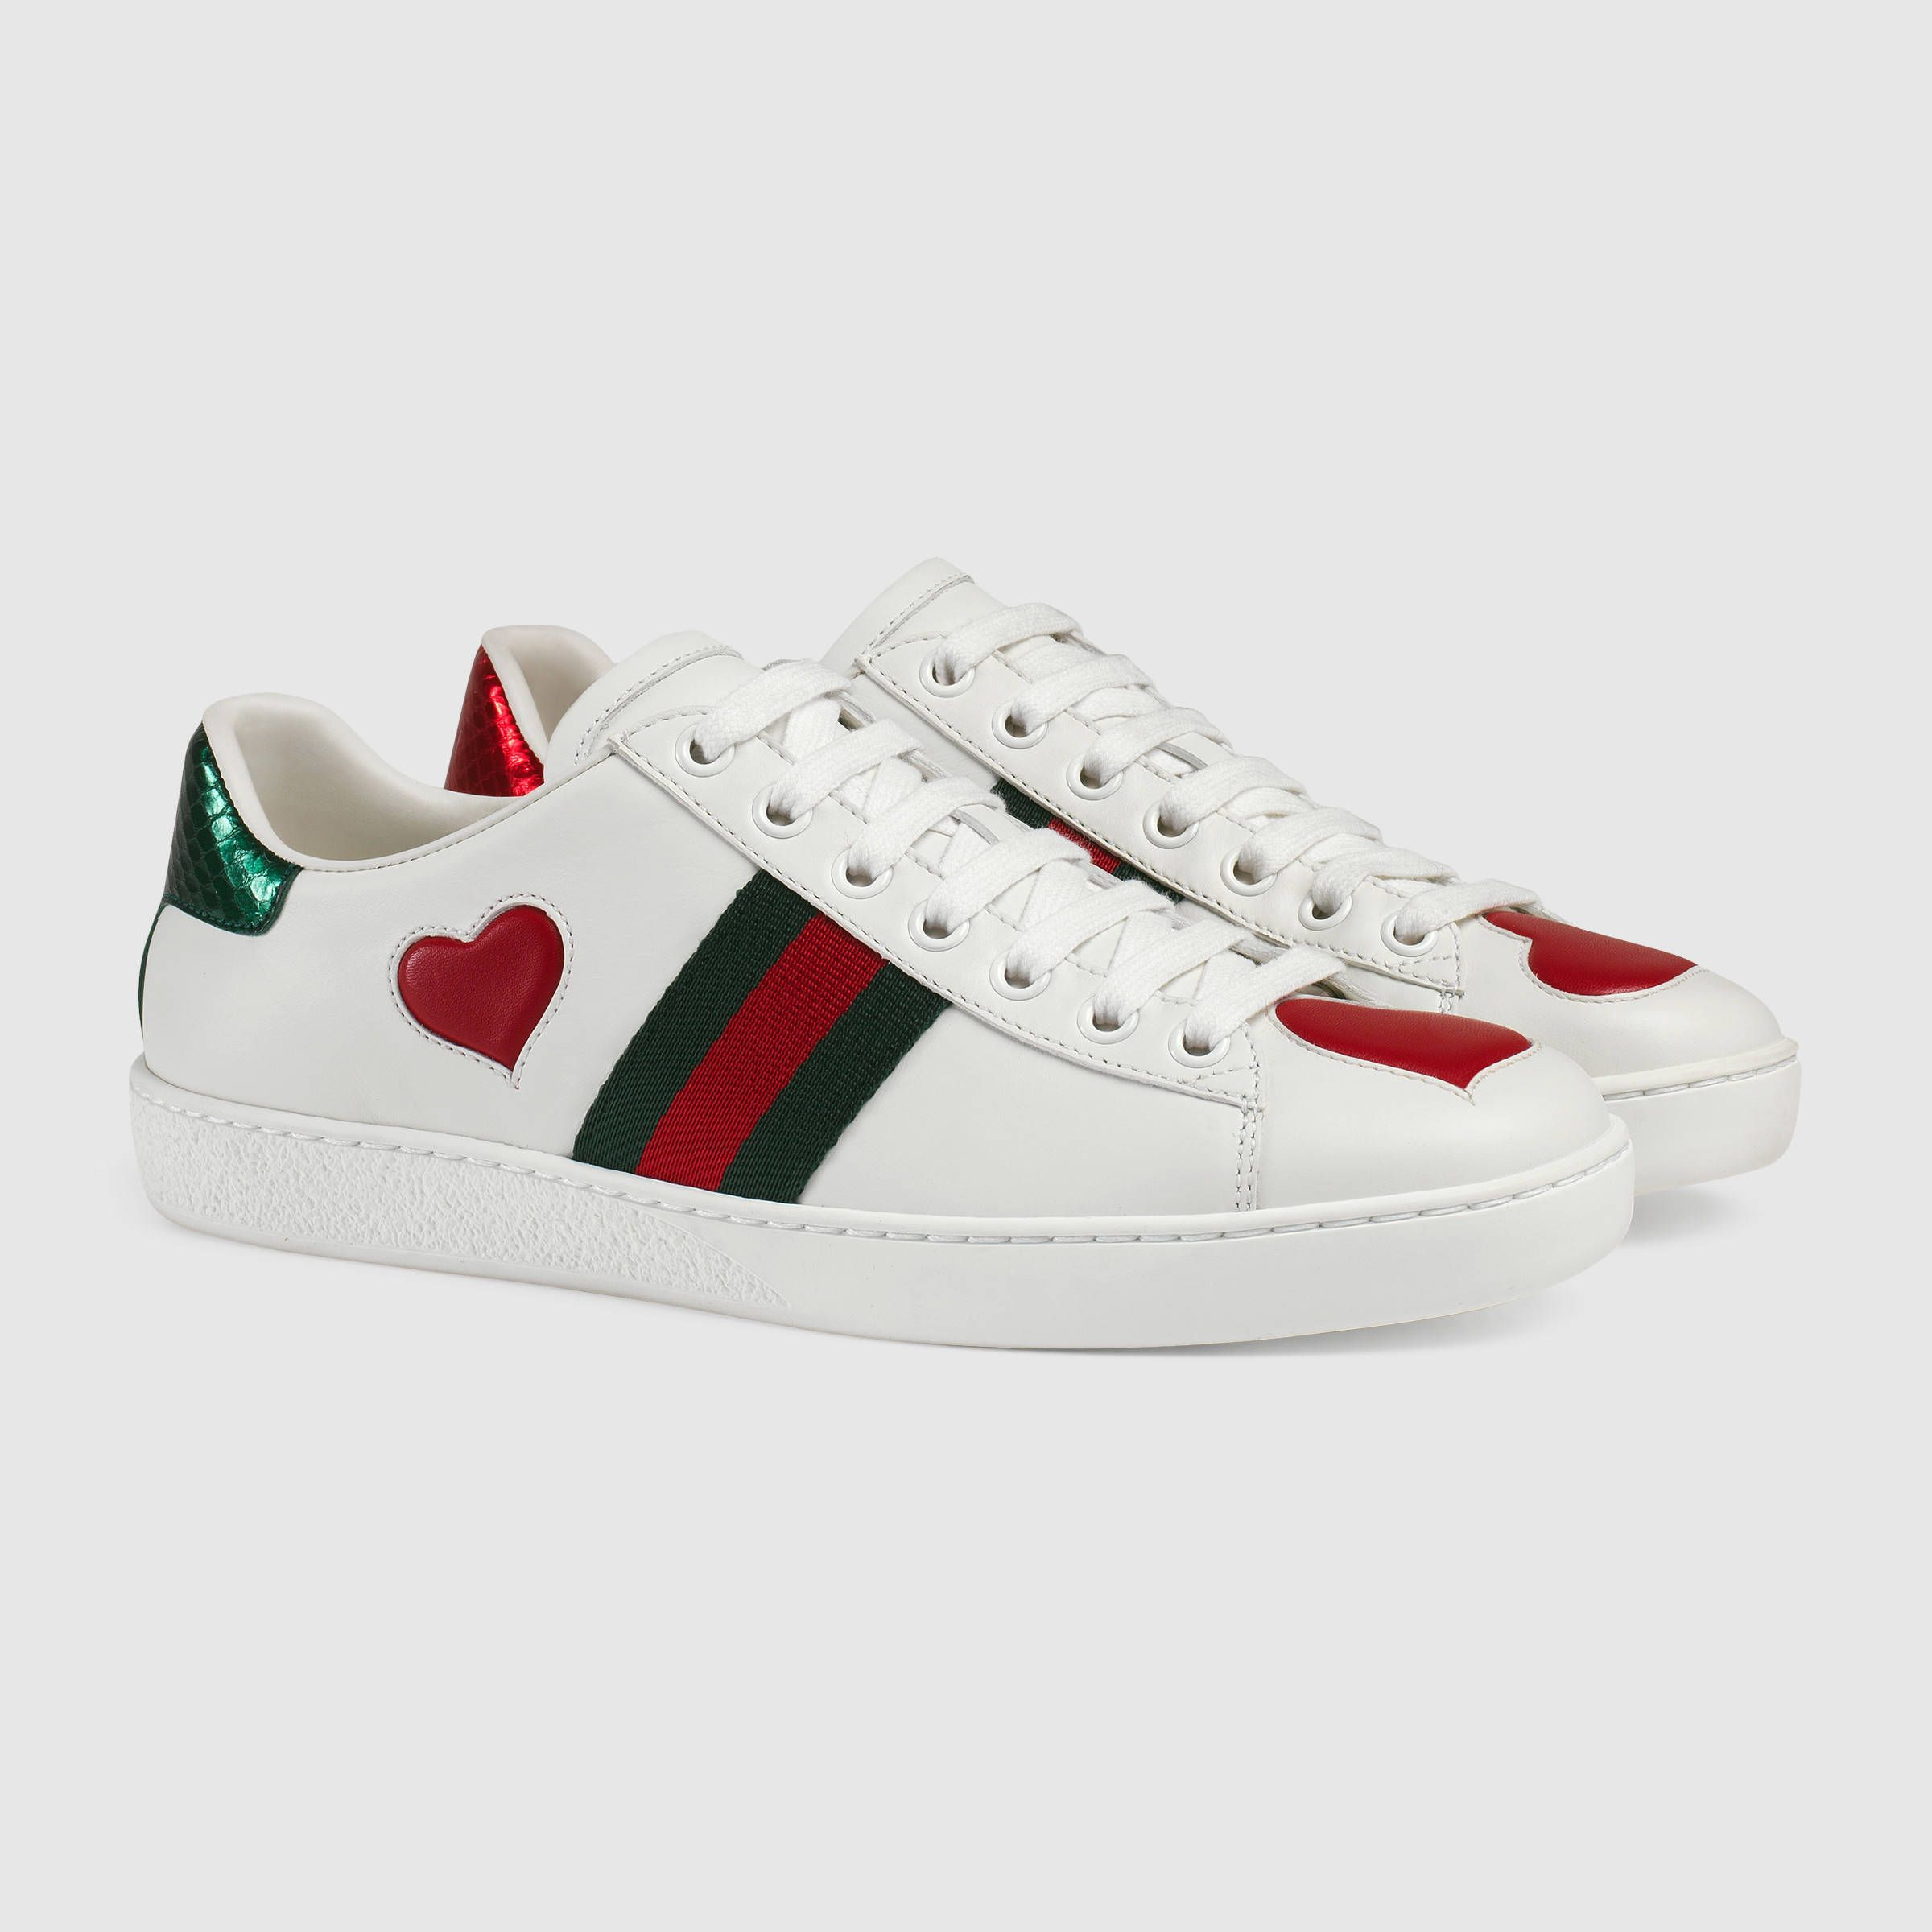 Gucci Ace Embroidered Low Top Sneaker Turnschuhe Damen Lederschuhe Damen Leder Sneaker